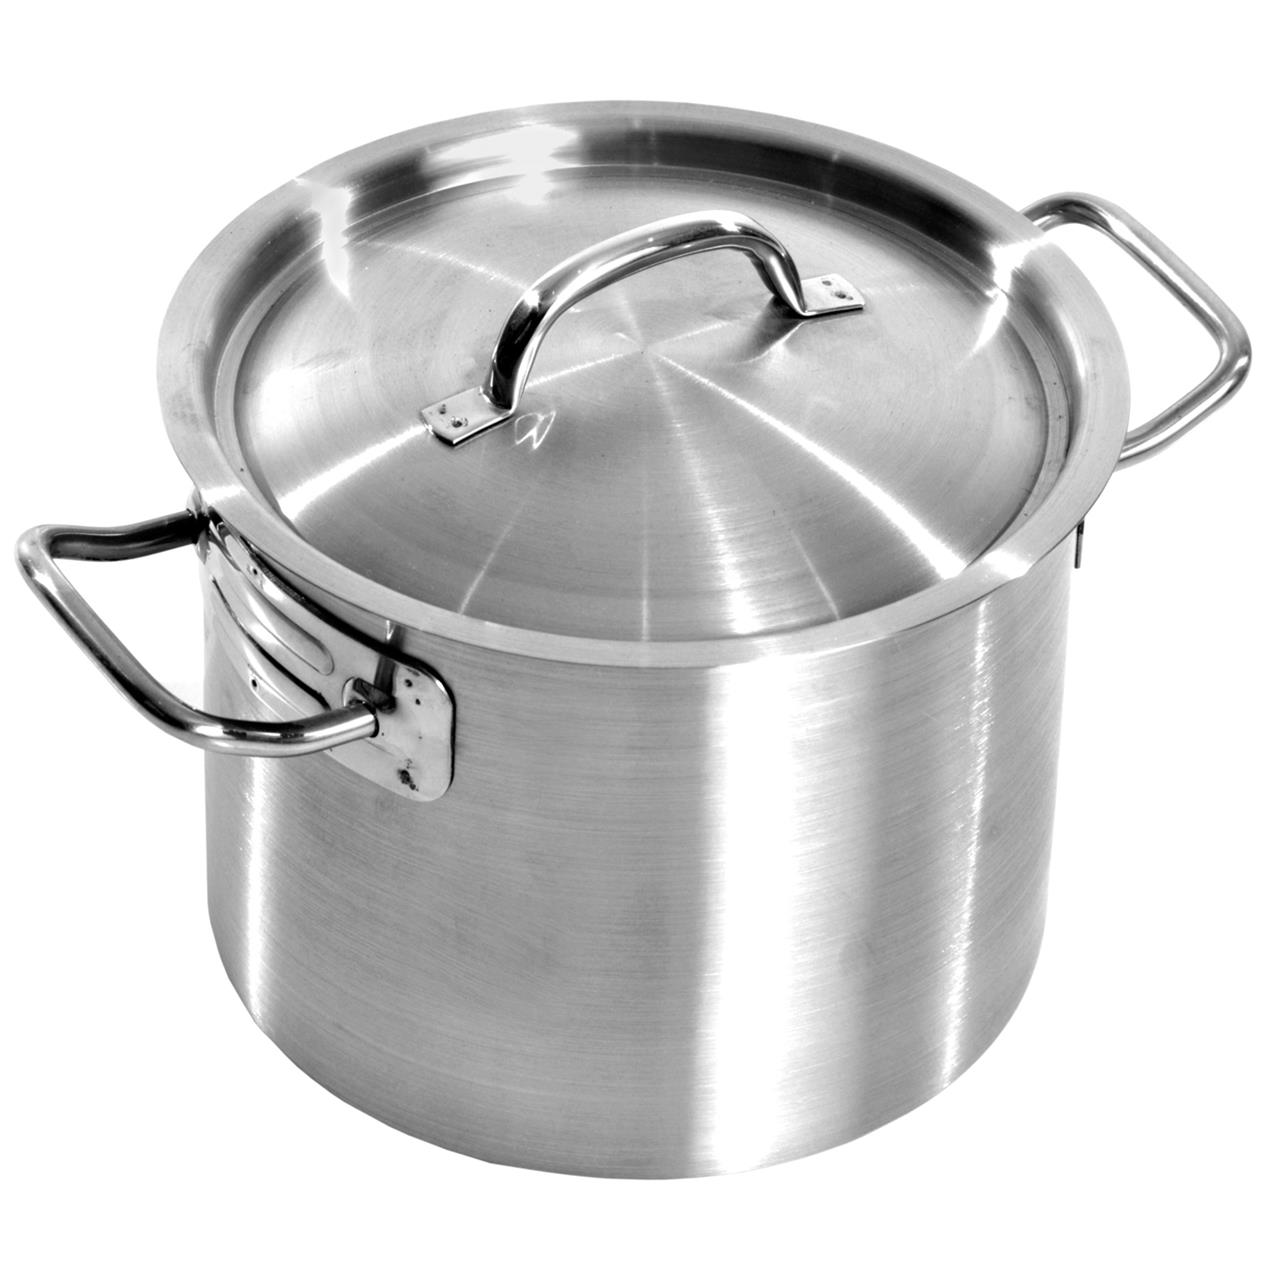 KH Stainless Steel Stockpot